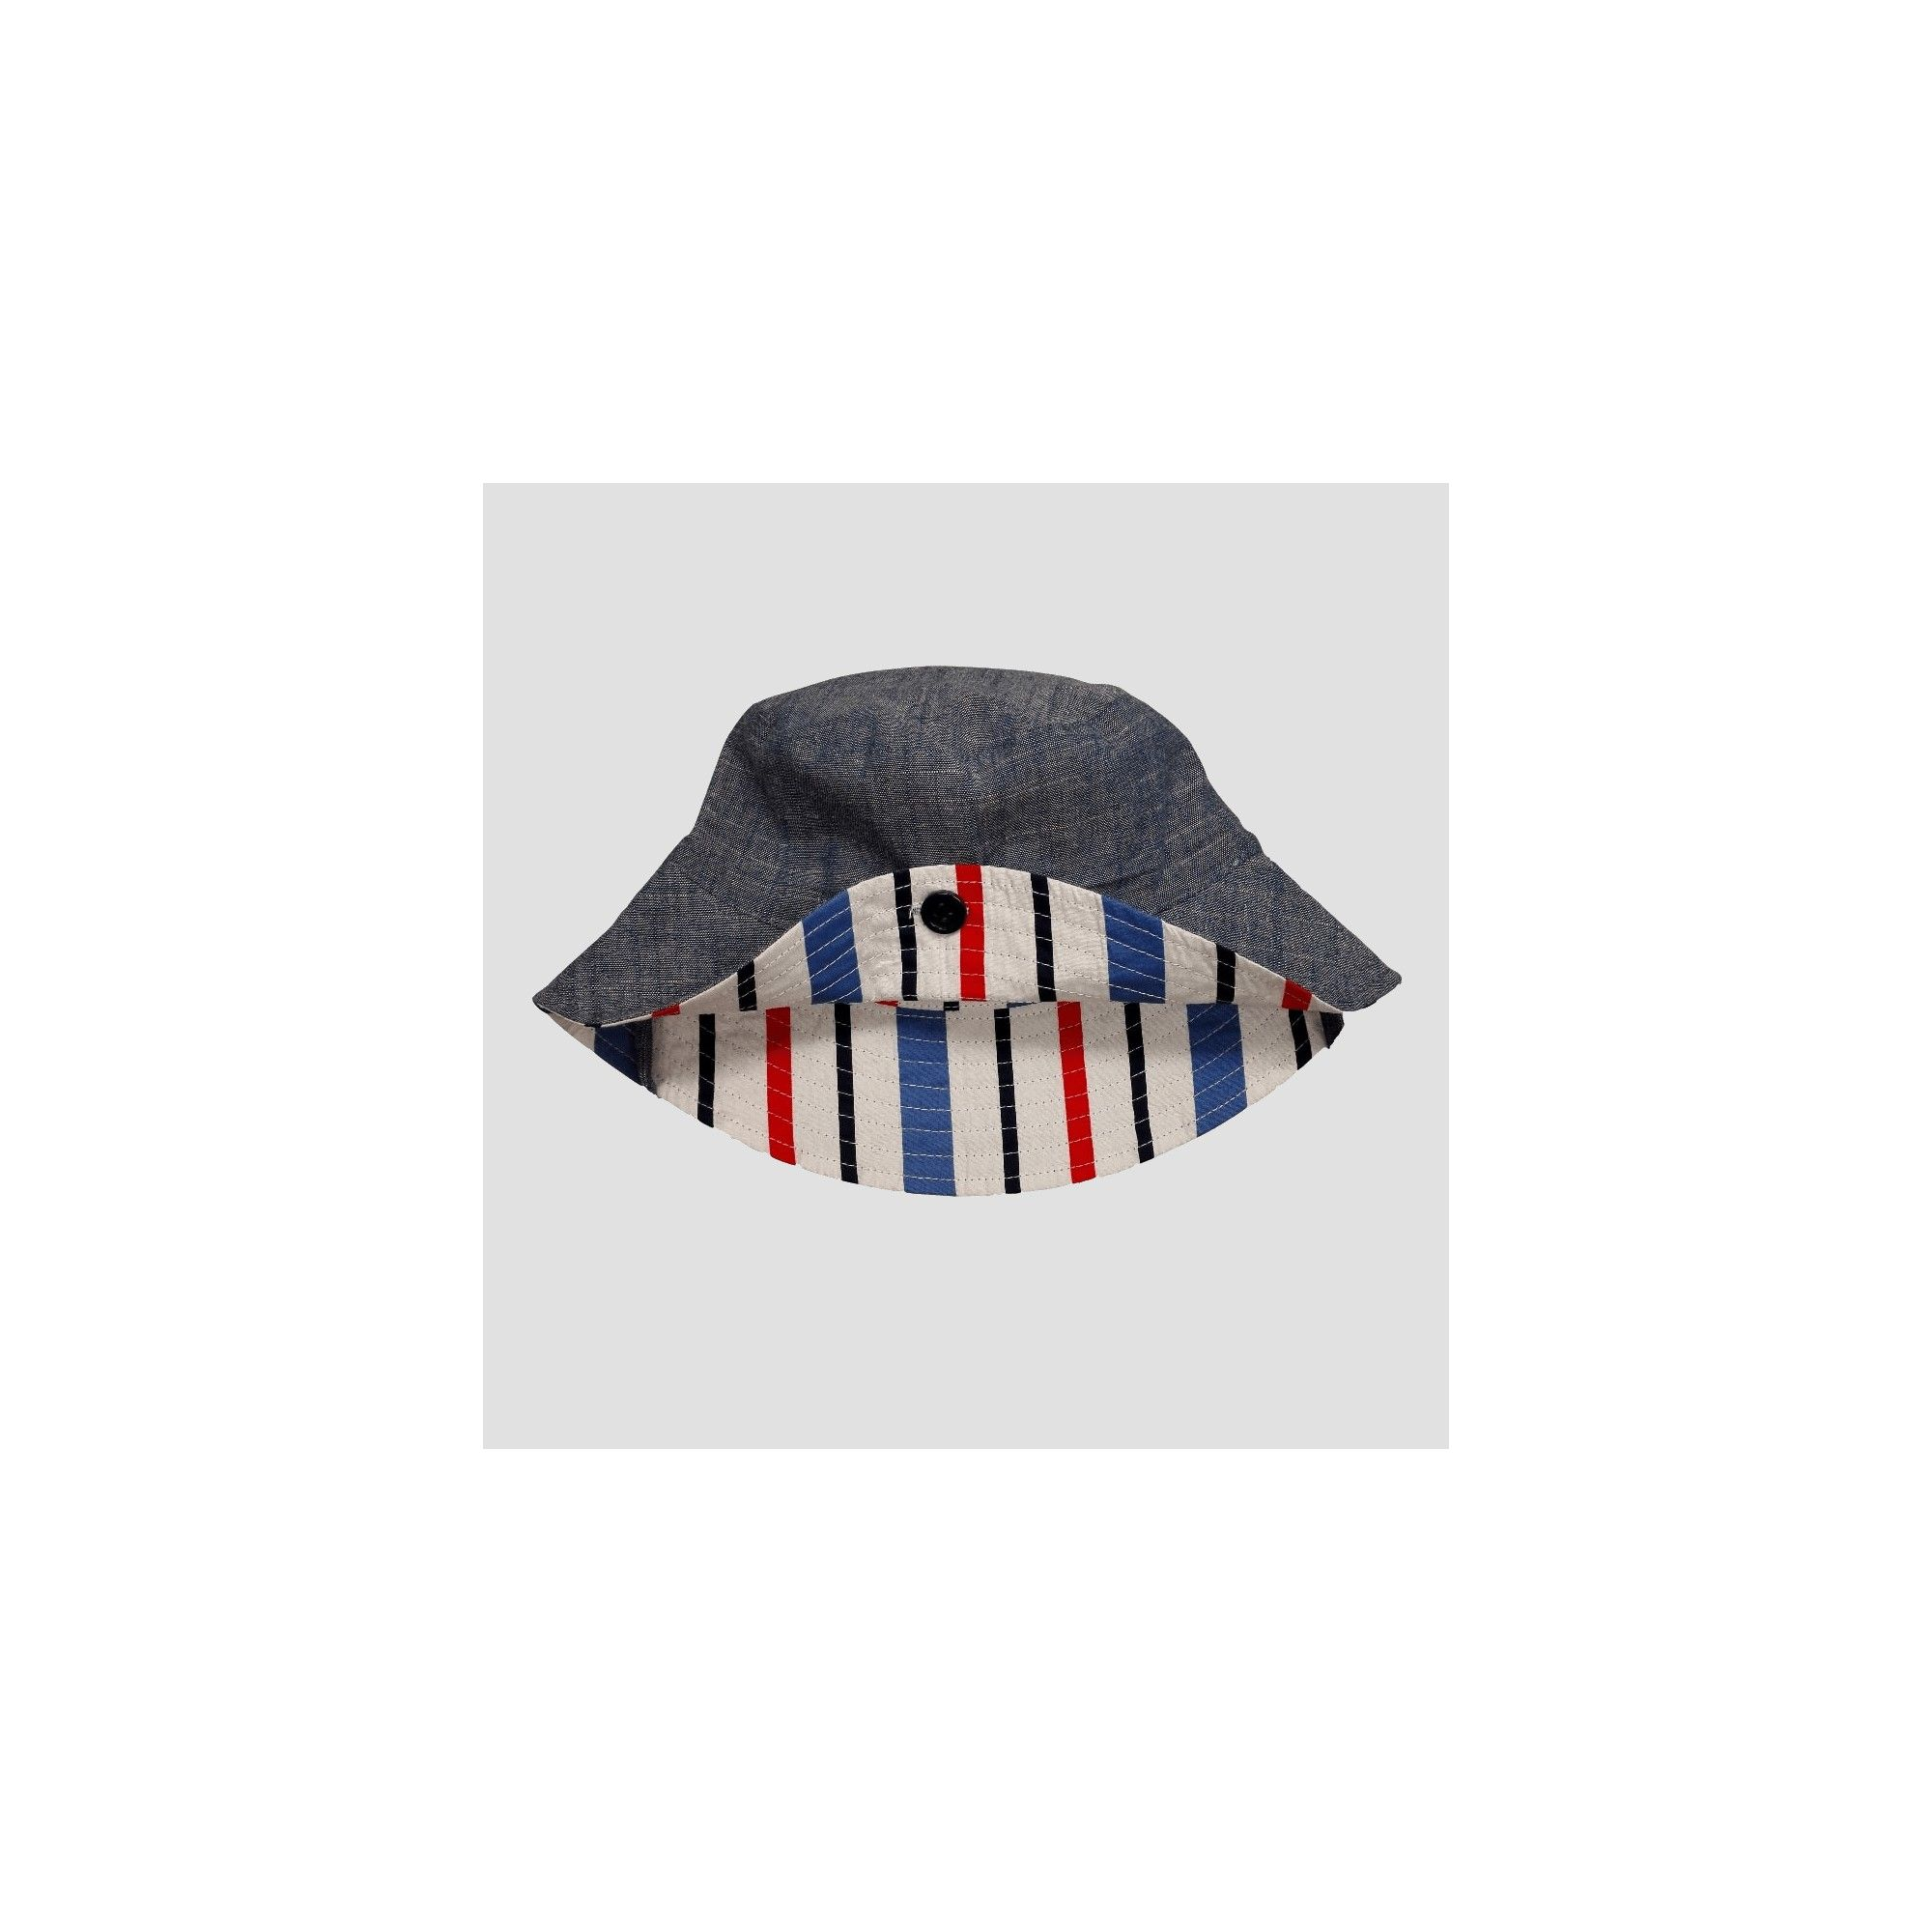 b8d894b6 Toddler Boys' Chambray & Stripe Reversible Bucket Hat - Cat & Jack Blue  2T-5T